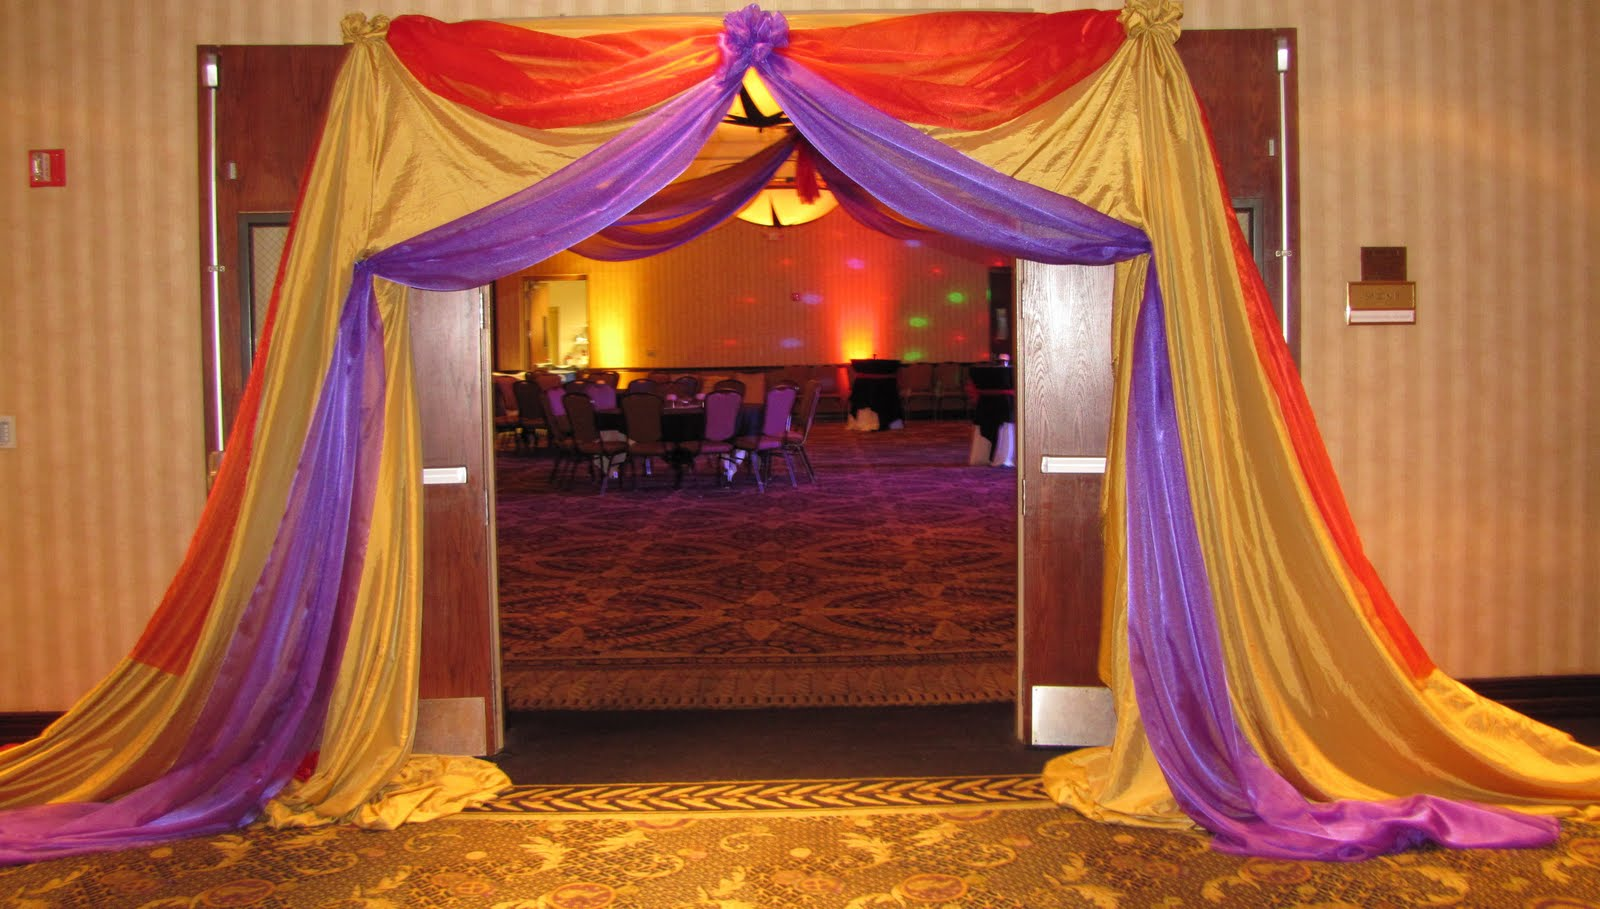 Cypress Creek Arabian Nights Prom 2011 Sheraton Safari Hotel Orlando